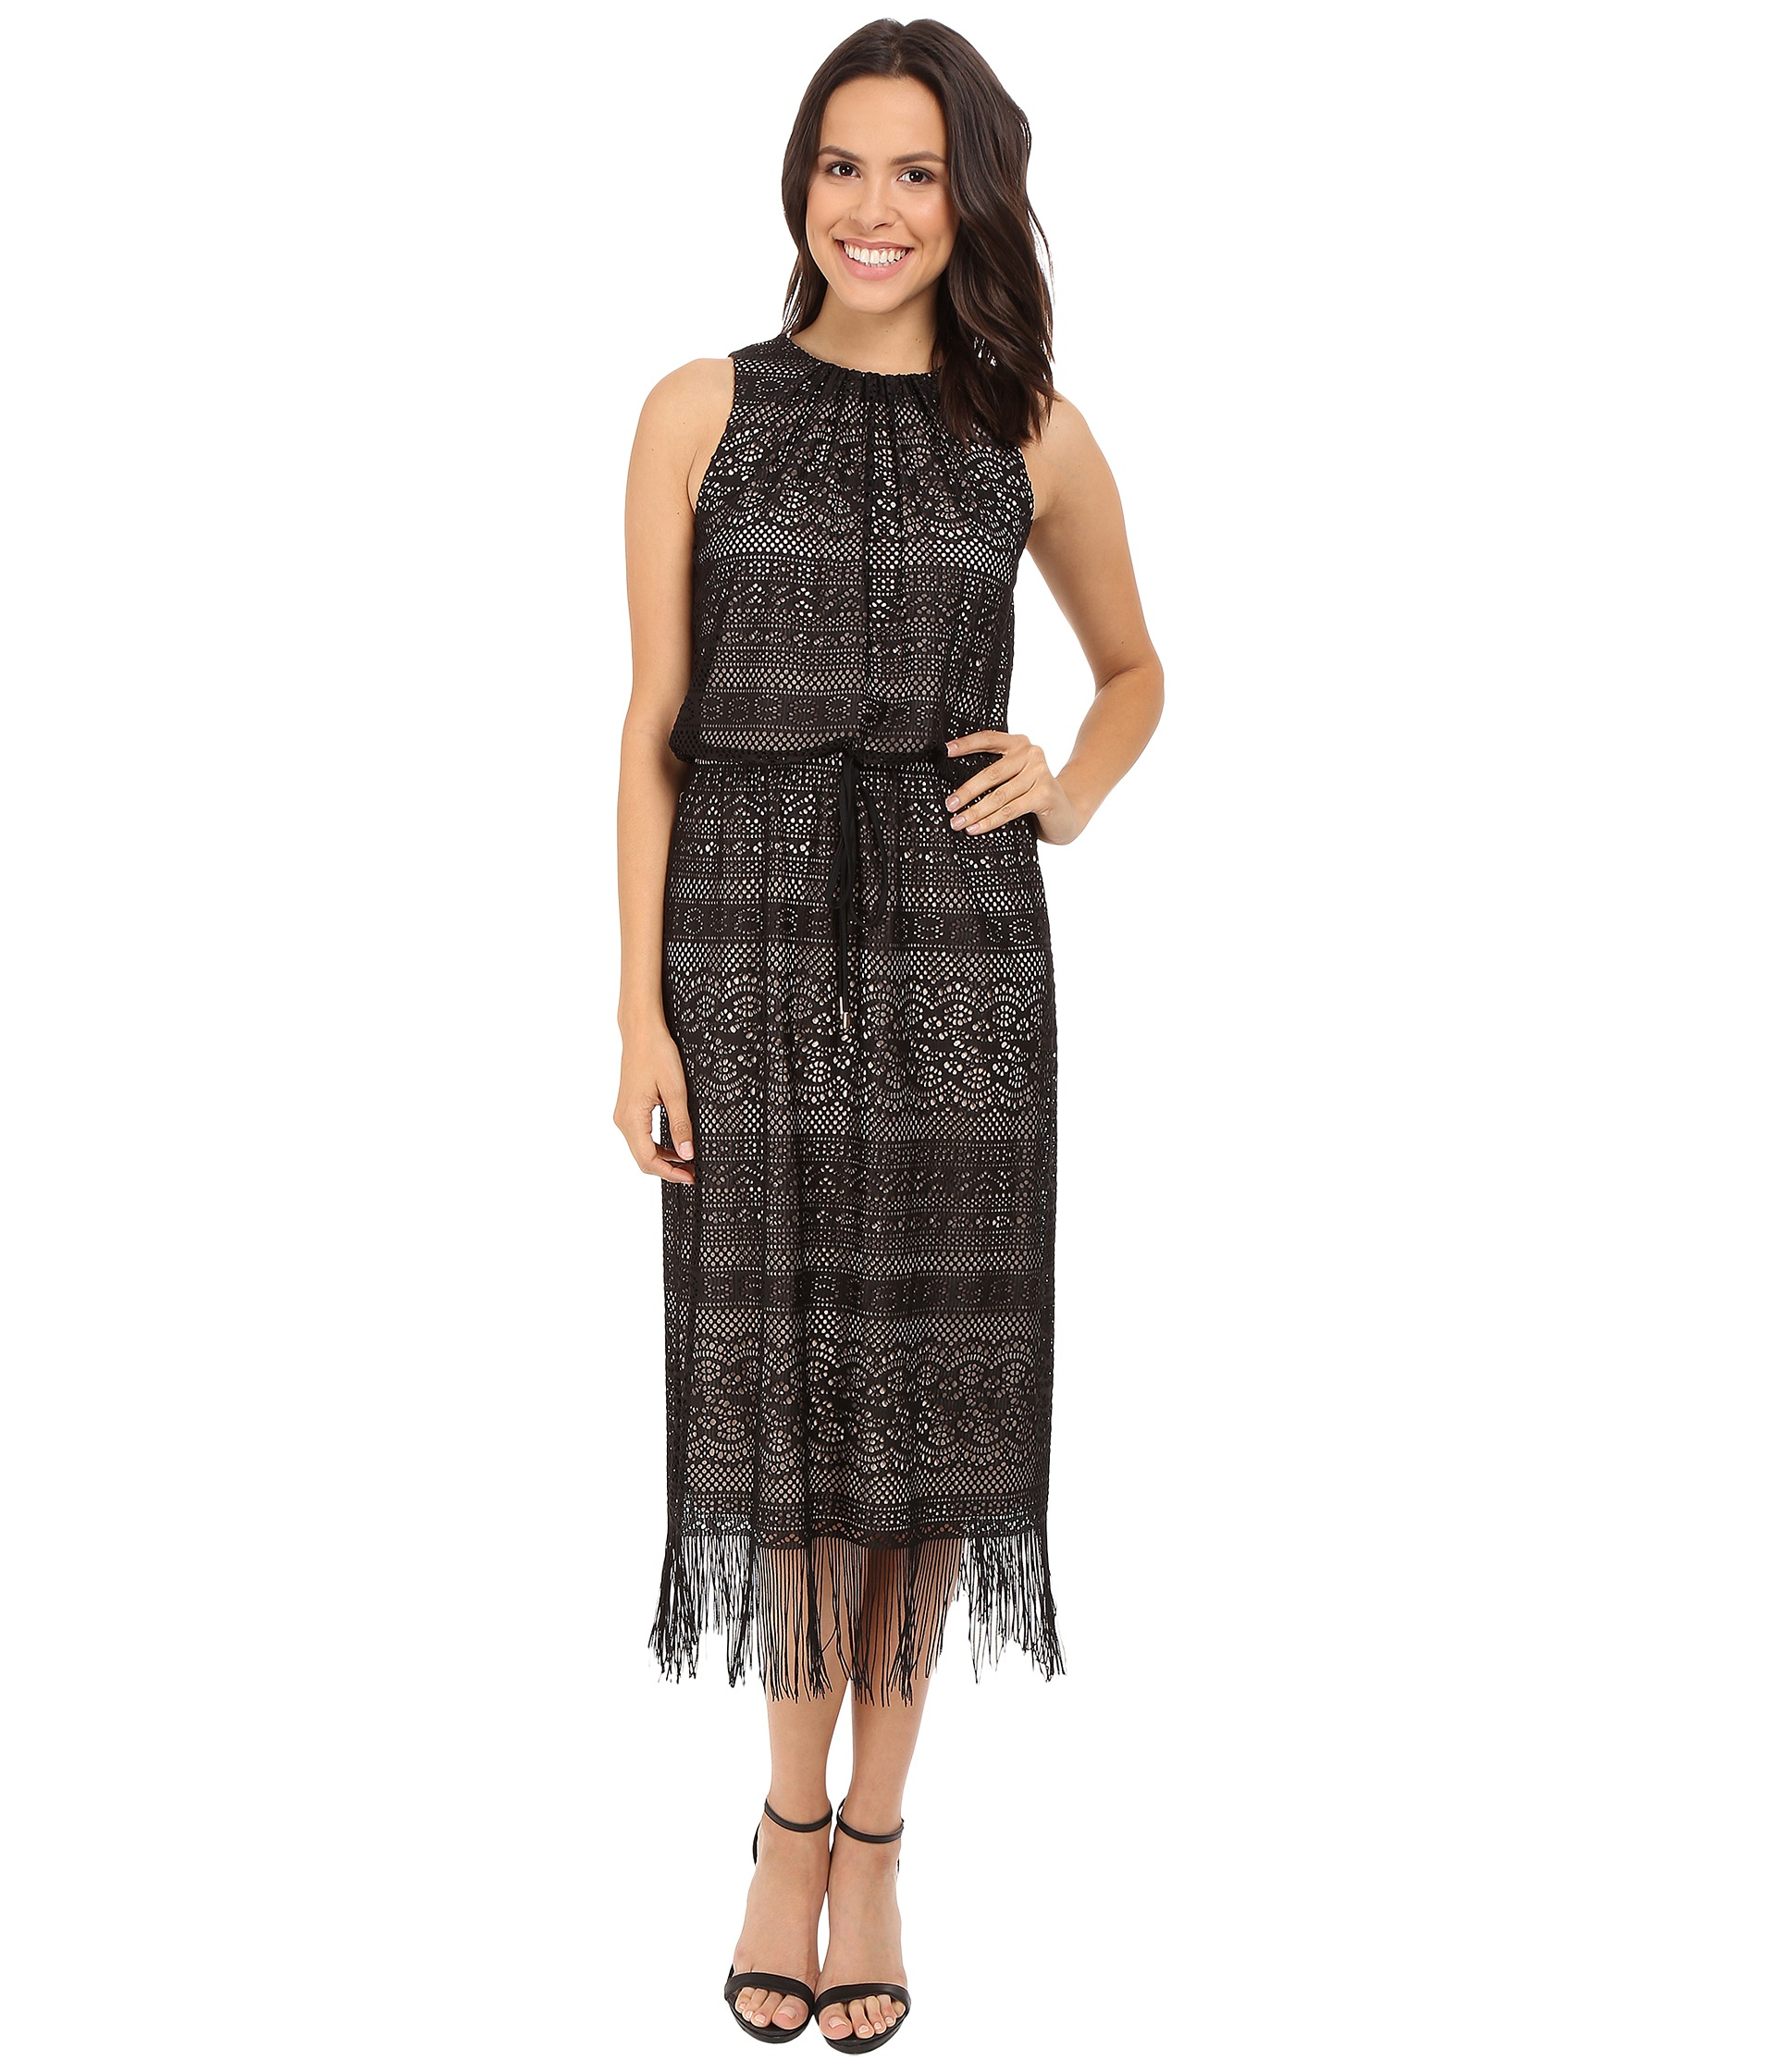 maxi dress 6pm zappo